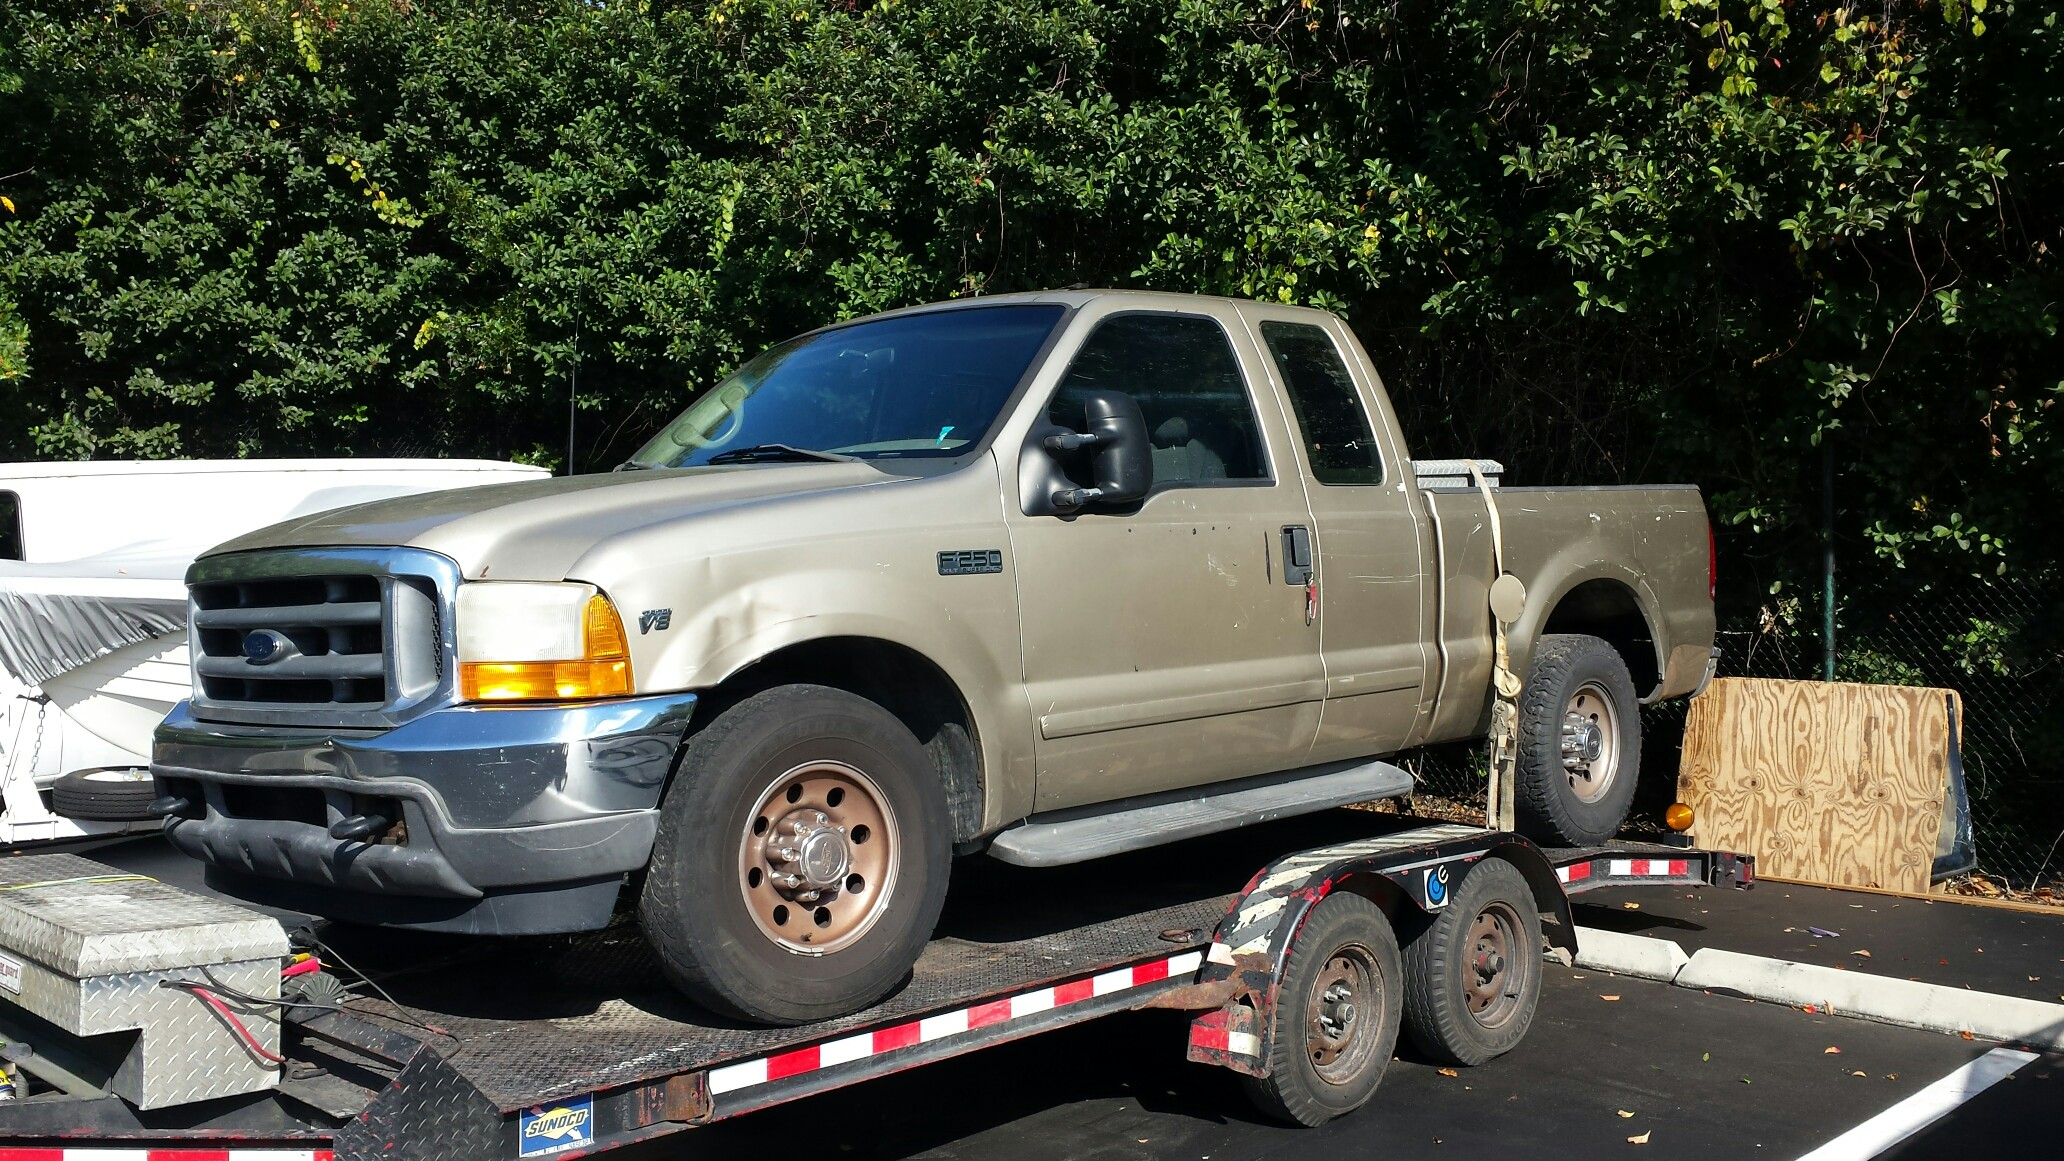 Junk Cars Orlando, No Keys/Title? No Problem! Free Towing & Removal!